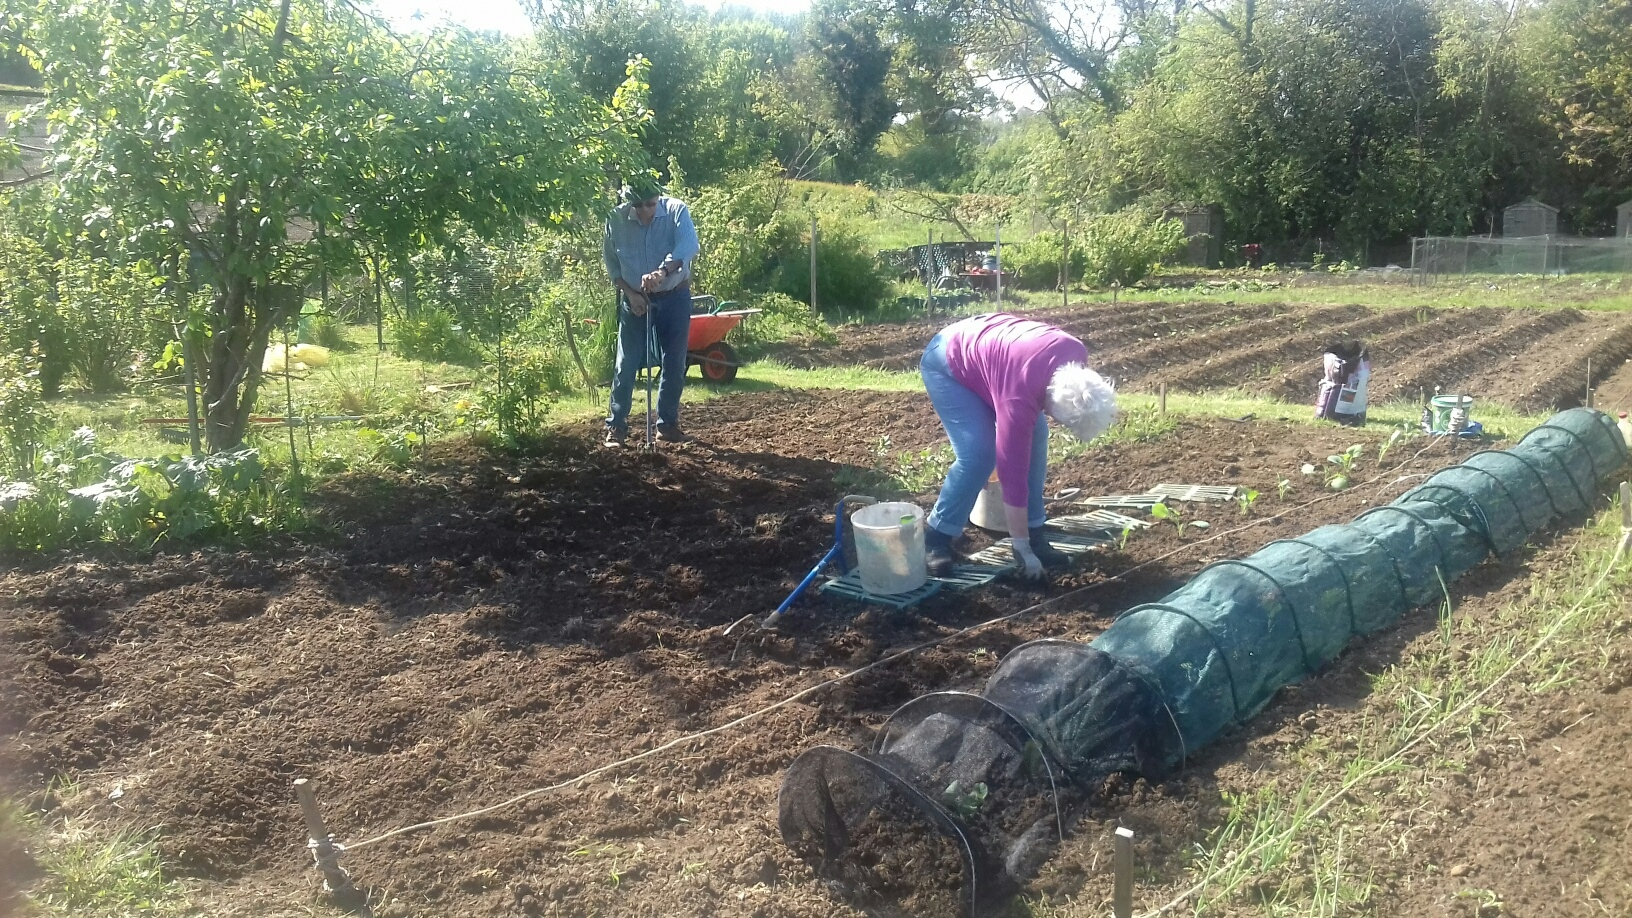 Digging for Victory! Ken and Trish Lusted cultivationg the soils and planting cabbage plants on their allotment. May 6 2020